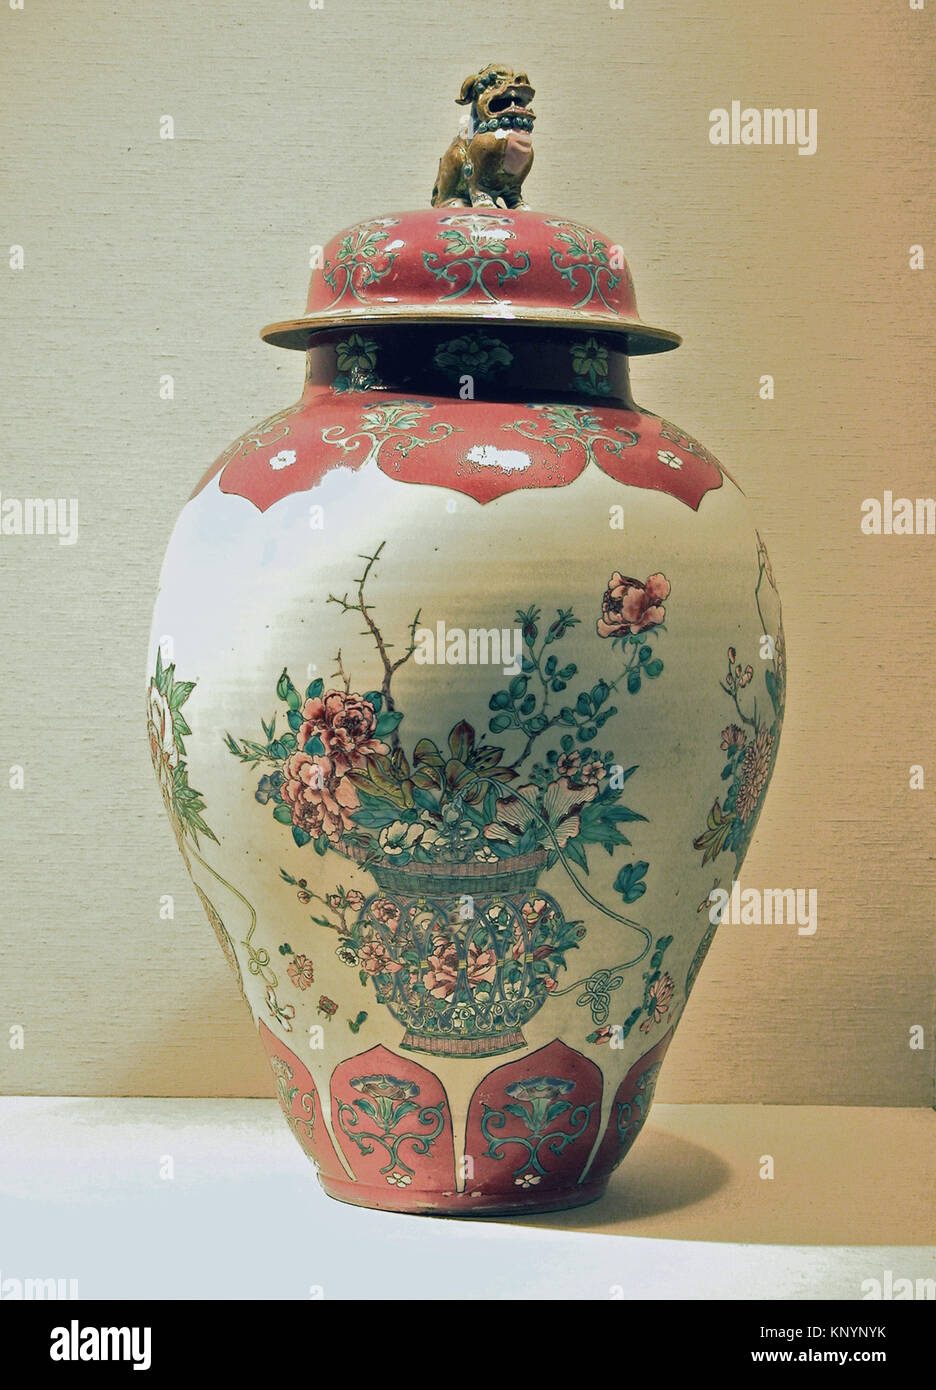 Jar with Basket of Auspicious Flowers. Period: Qing dynasty (1644-1911), Qianlong period (1736-95); Date: 18th century; - Stock Image